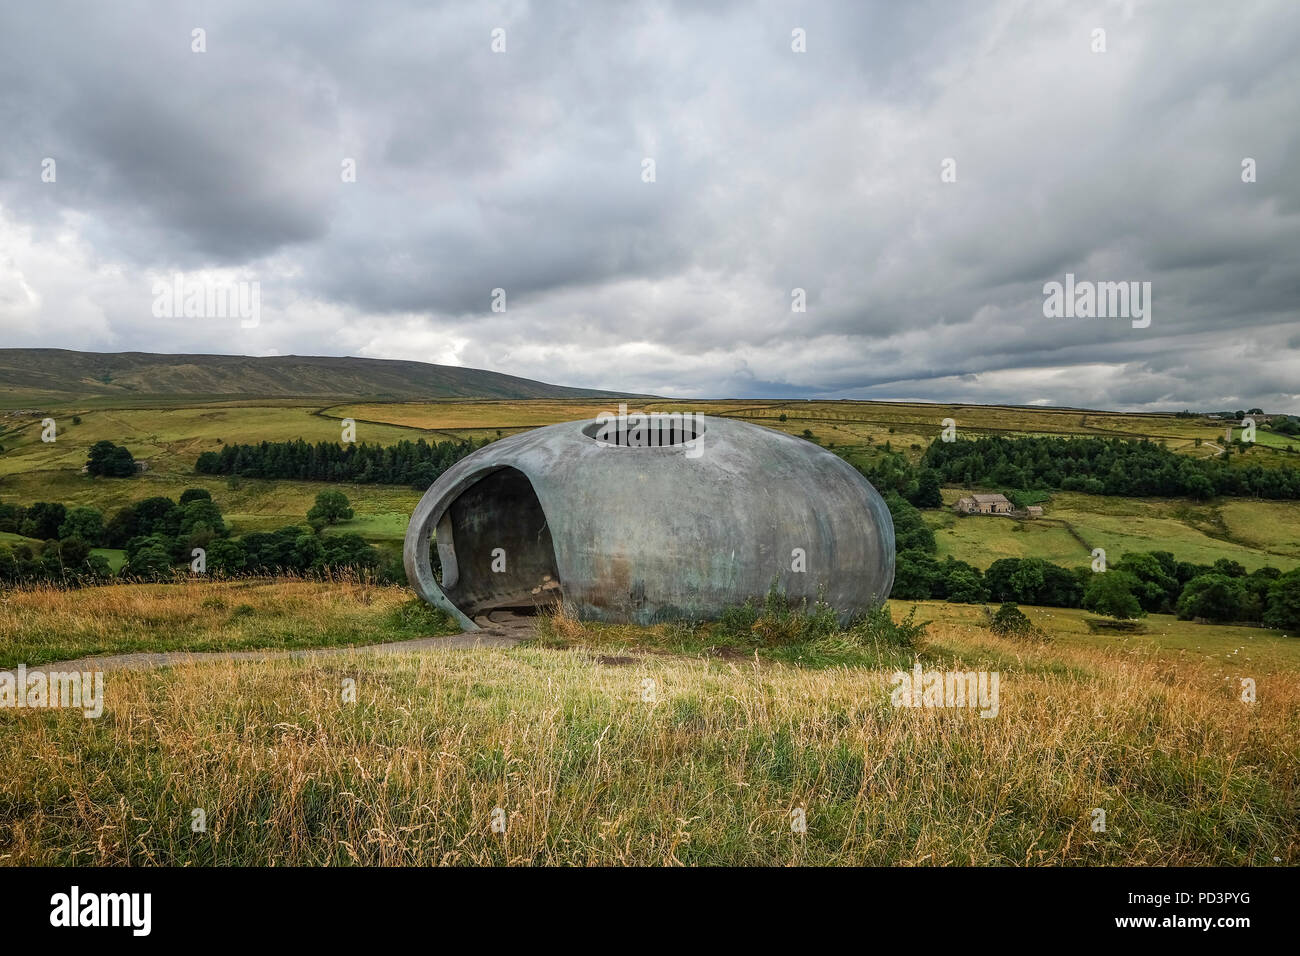 The Atom is one of a number of Panopticons in Lancashire. The Pendle Atom stands on the hillside above the village of Wycoller. - Stock Image